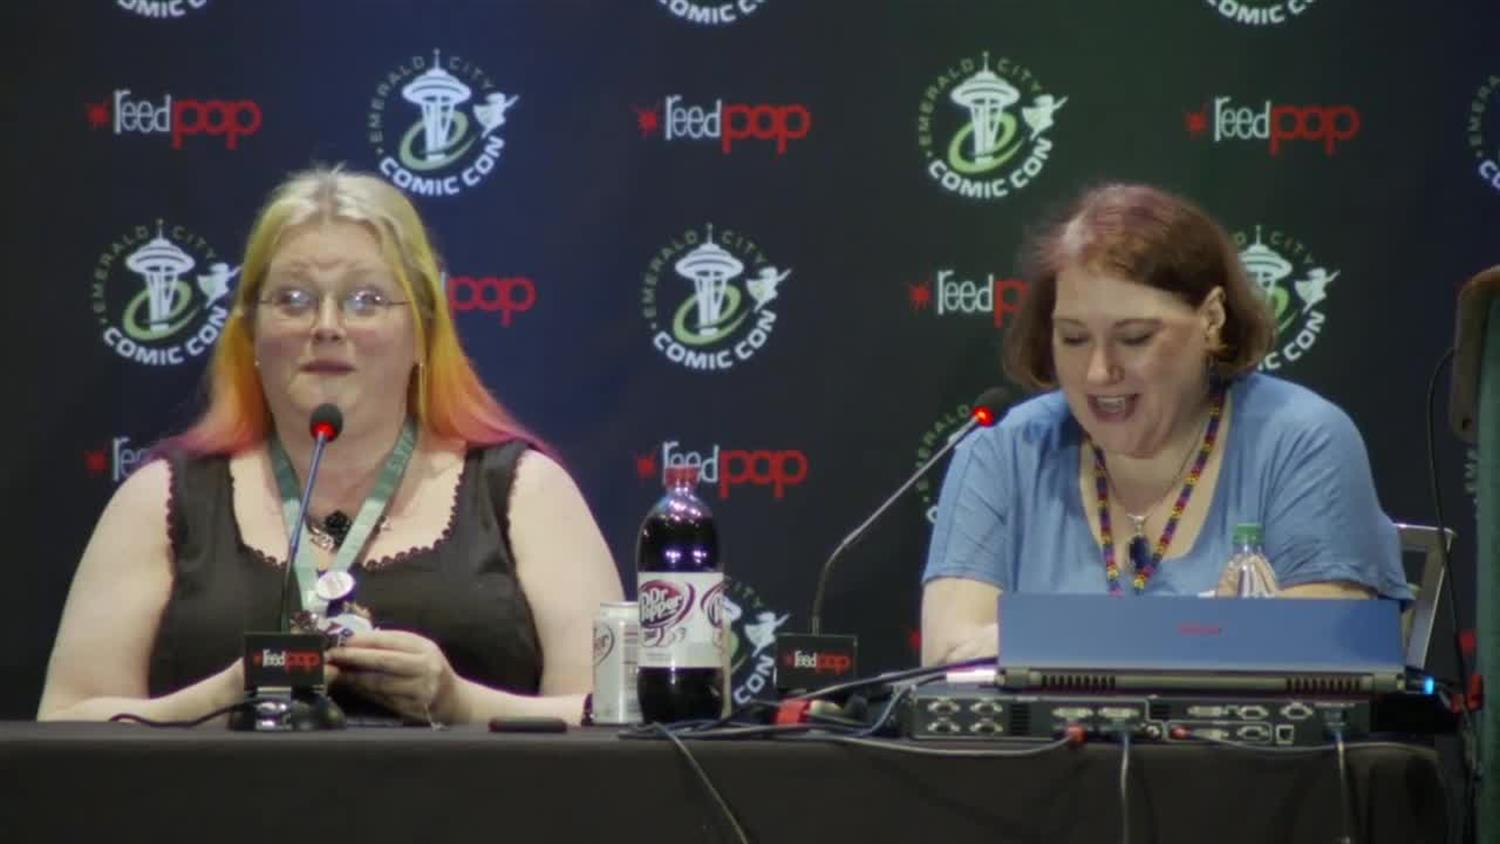 Mixing Fantasy With Other Genres (ECCC 2019)